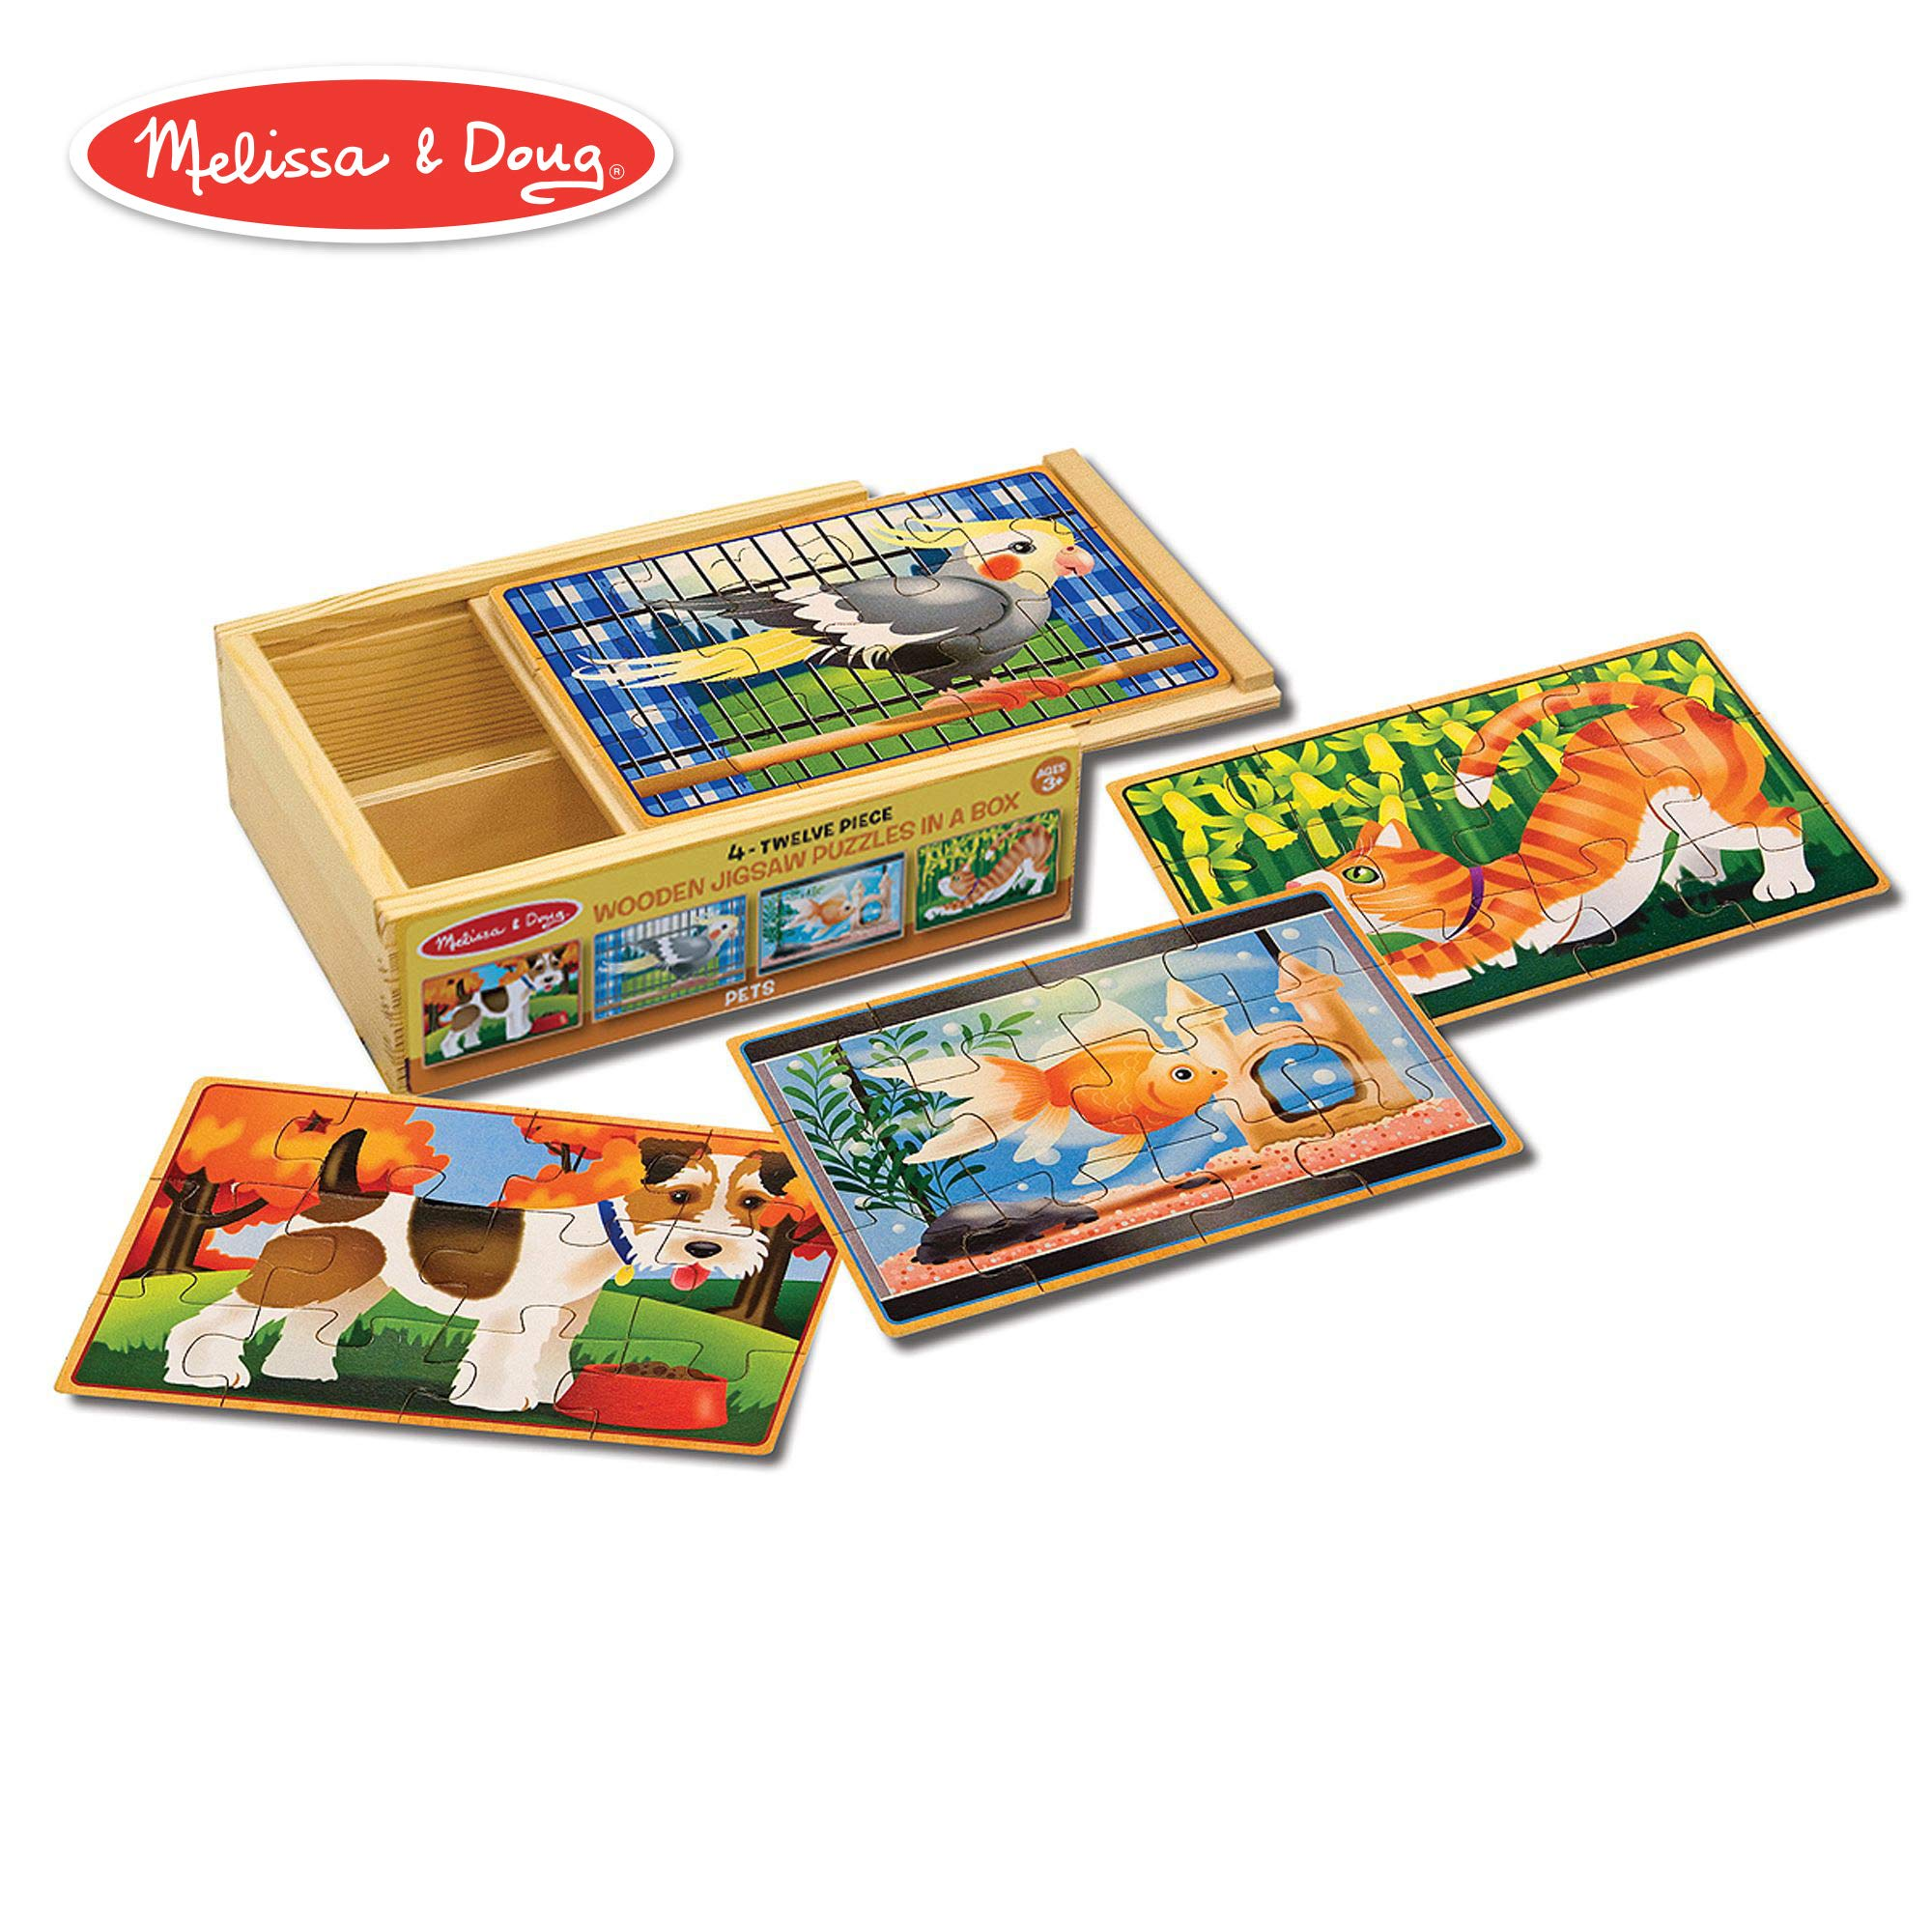 Melissa & Doug Pets Jigsaw Puzzles in a Box (Four Wooden Puzzles, Sturdy Wooden Storage Box, 12-Piece Puzzles, 8'' H x 6'' W x 2.5'' L) by Melissa & Doug